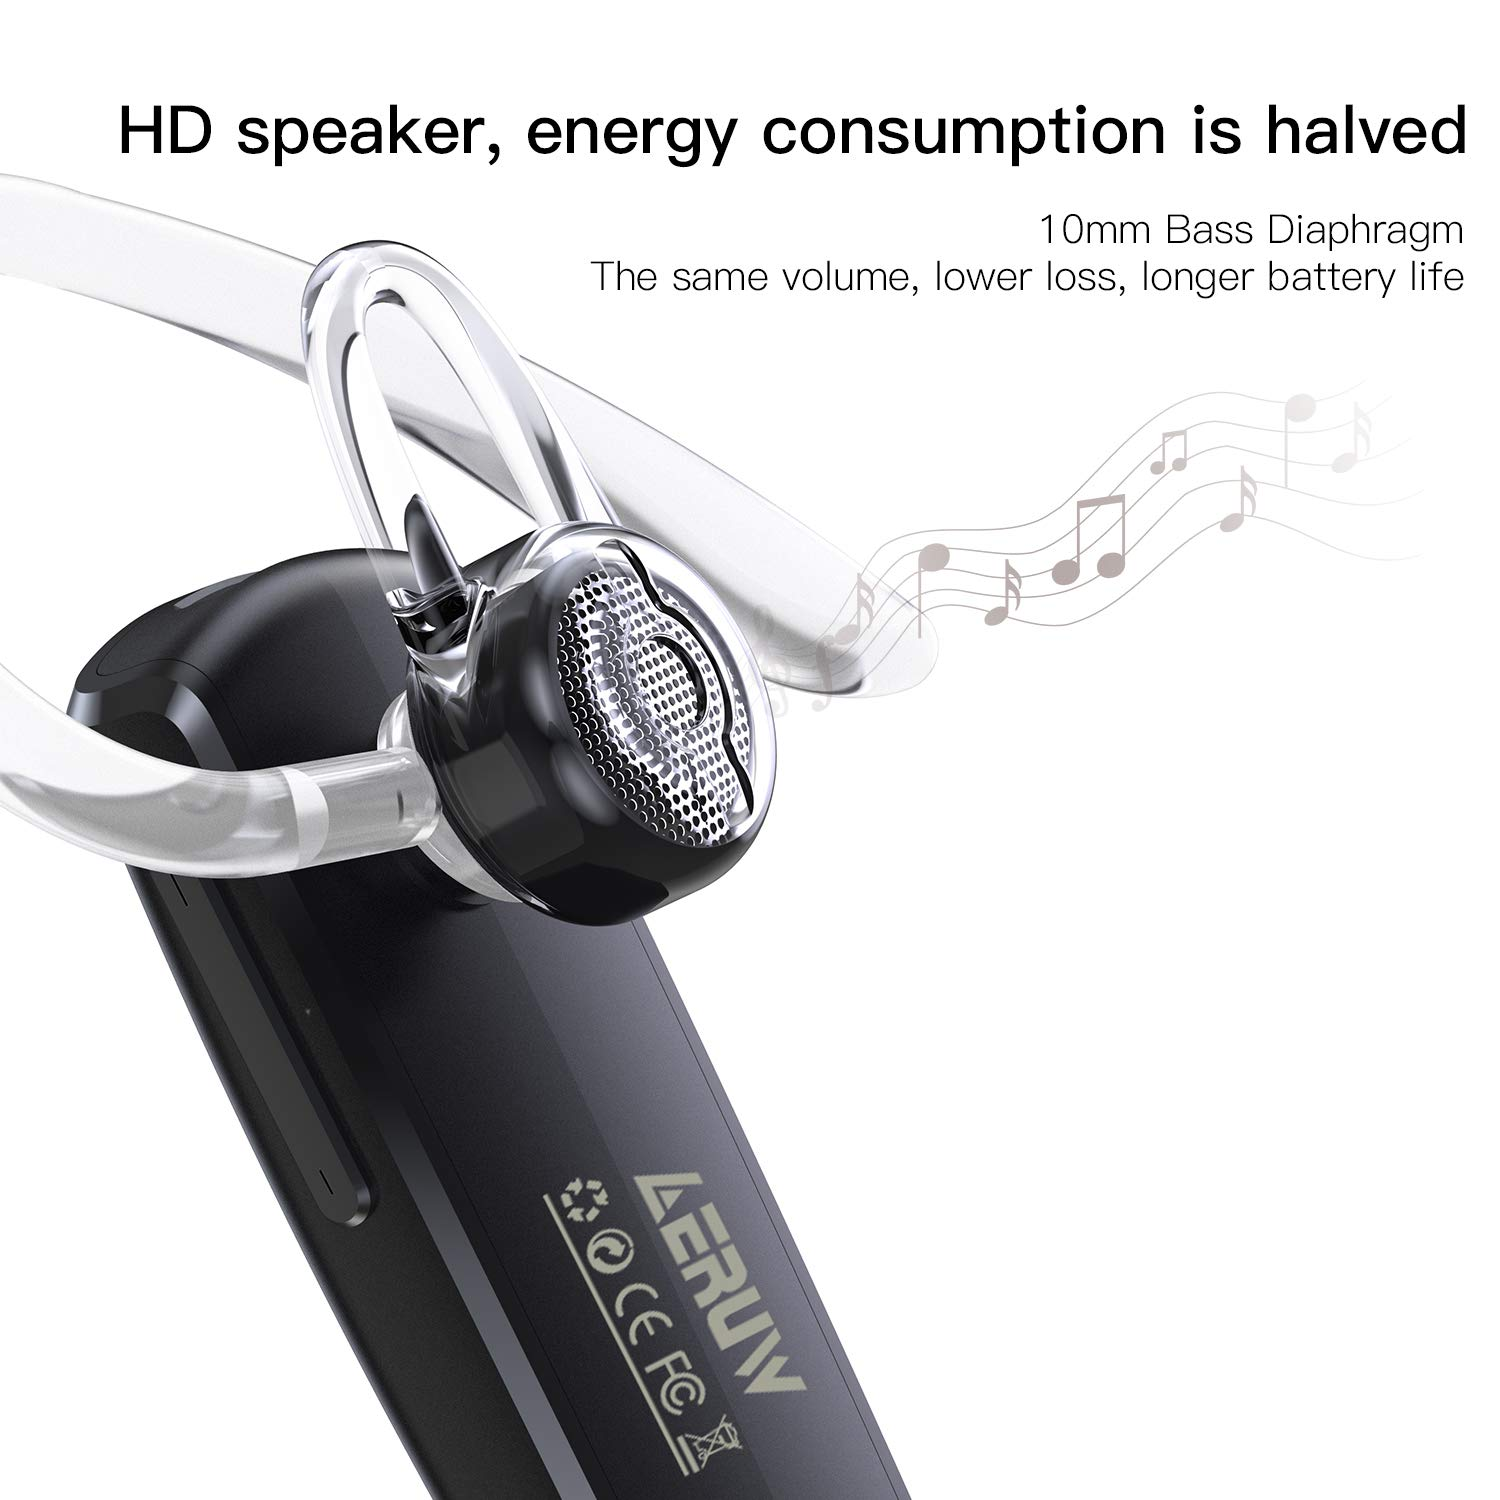 Bluetooth Headset,Hands Free Wireless Earpiece with Mic - Noise Reduction Bluetooth Earphone in-Ear Earbuds for Business/Office/Driving Support for iPhone